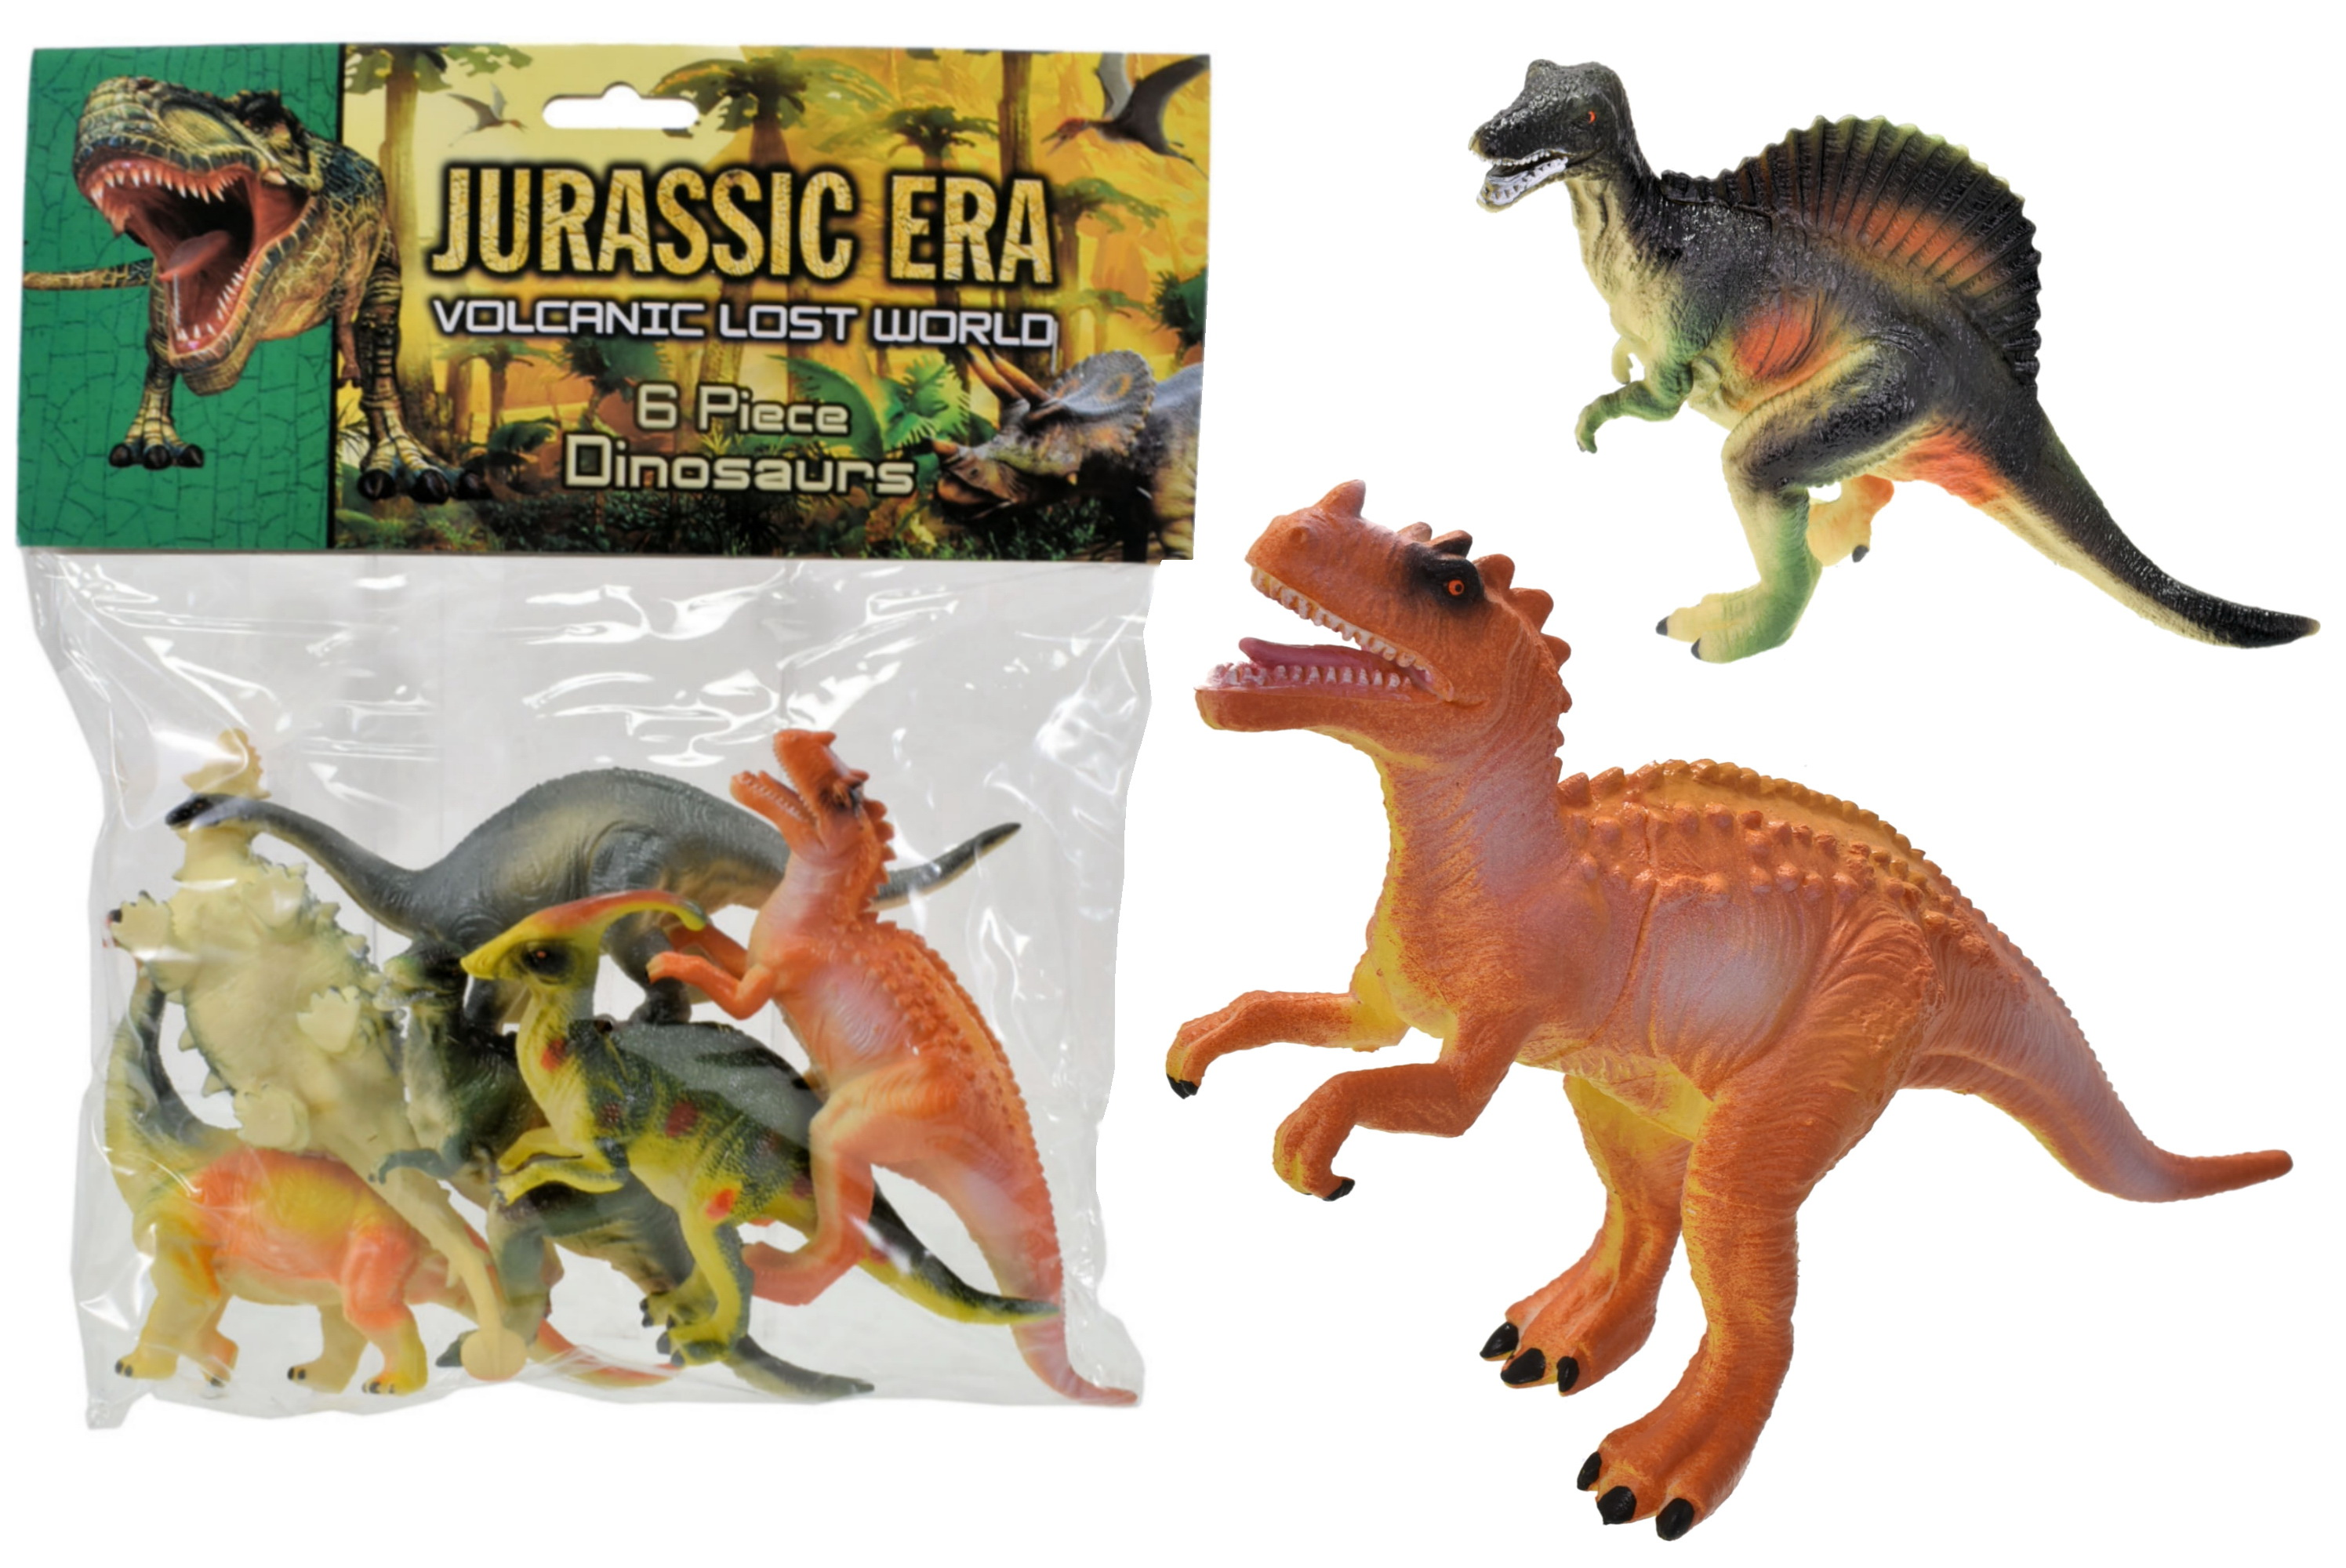 6pc Dinosaurs In Large Bag/Header Card